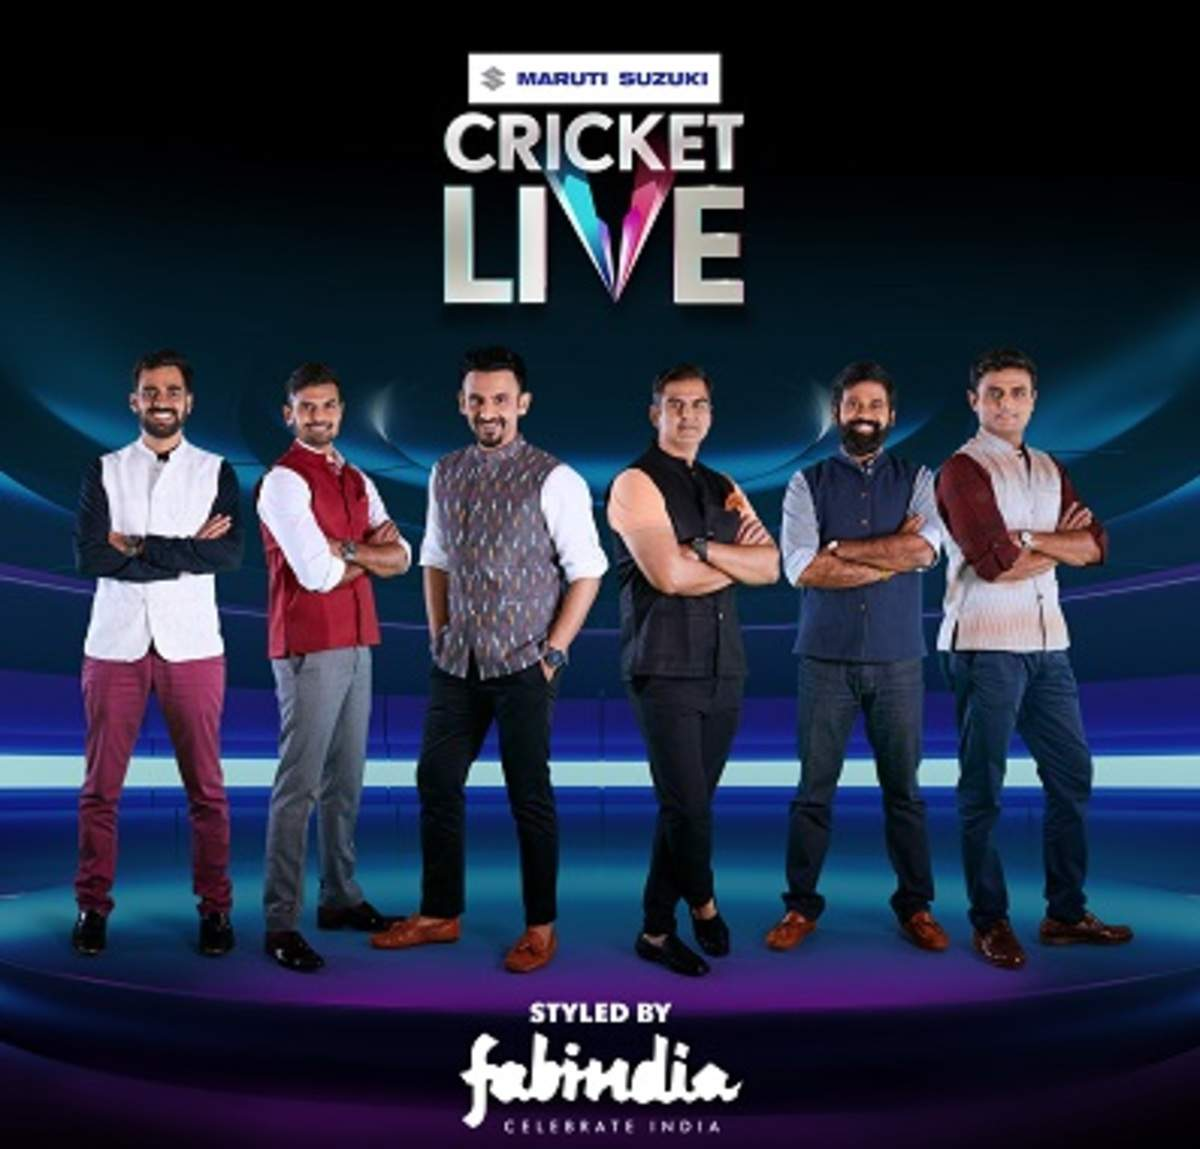 Star Sports Ipl Live Shop Clothing Shoes Online Free online stream, latest score and video highlights and all the latest indian premier league news. jocivancontabil com br